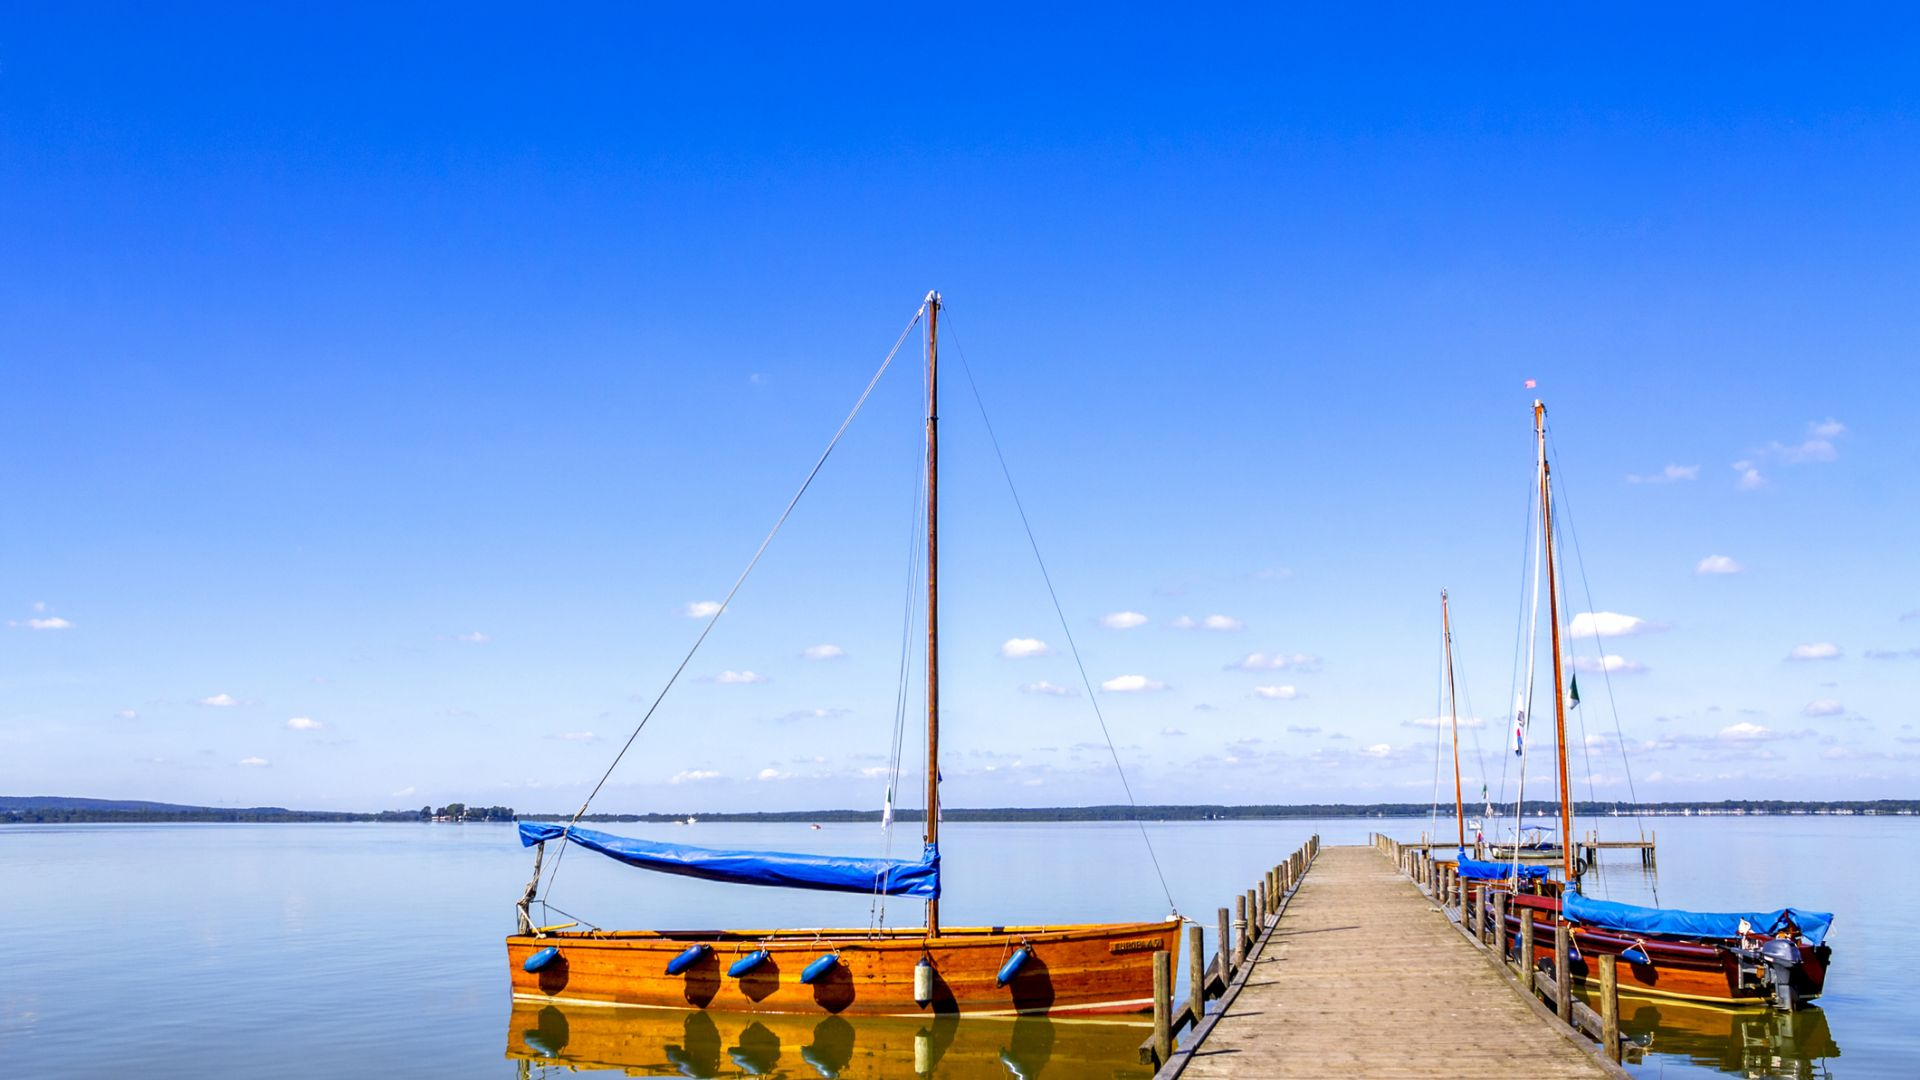 Steinhuder Meer with empty jetty and moored sailing boats